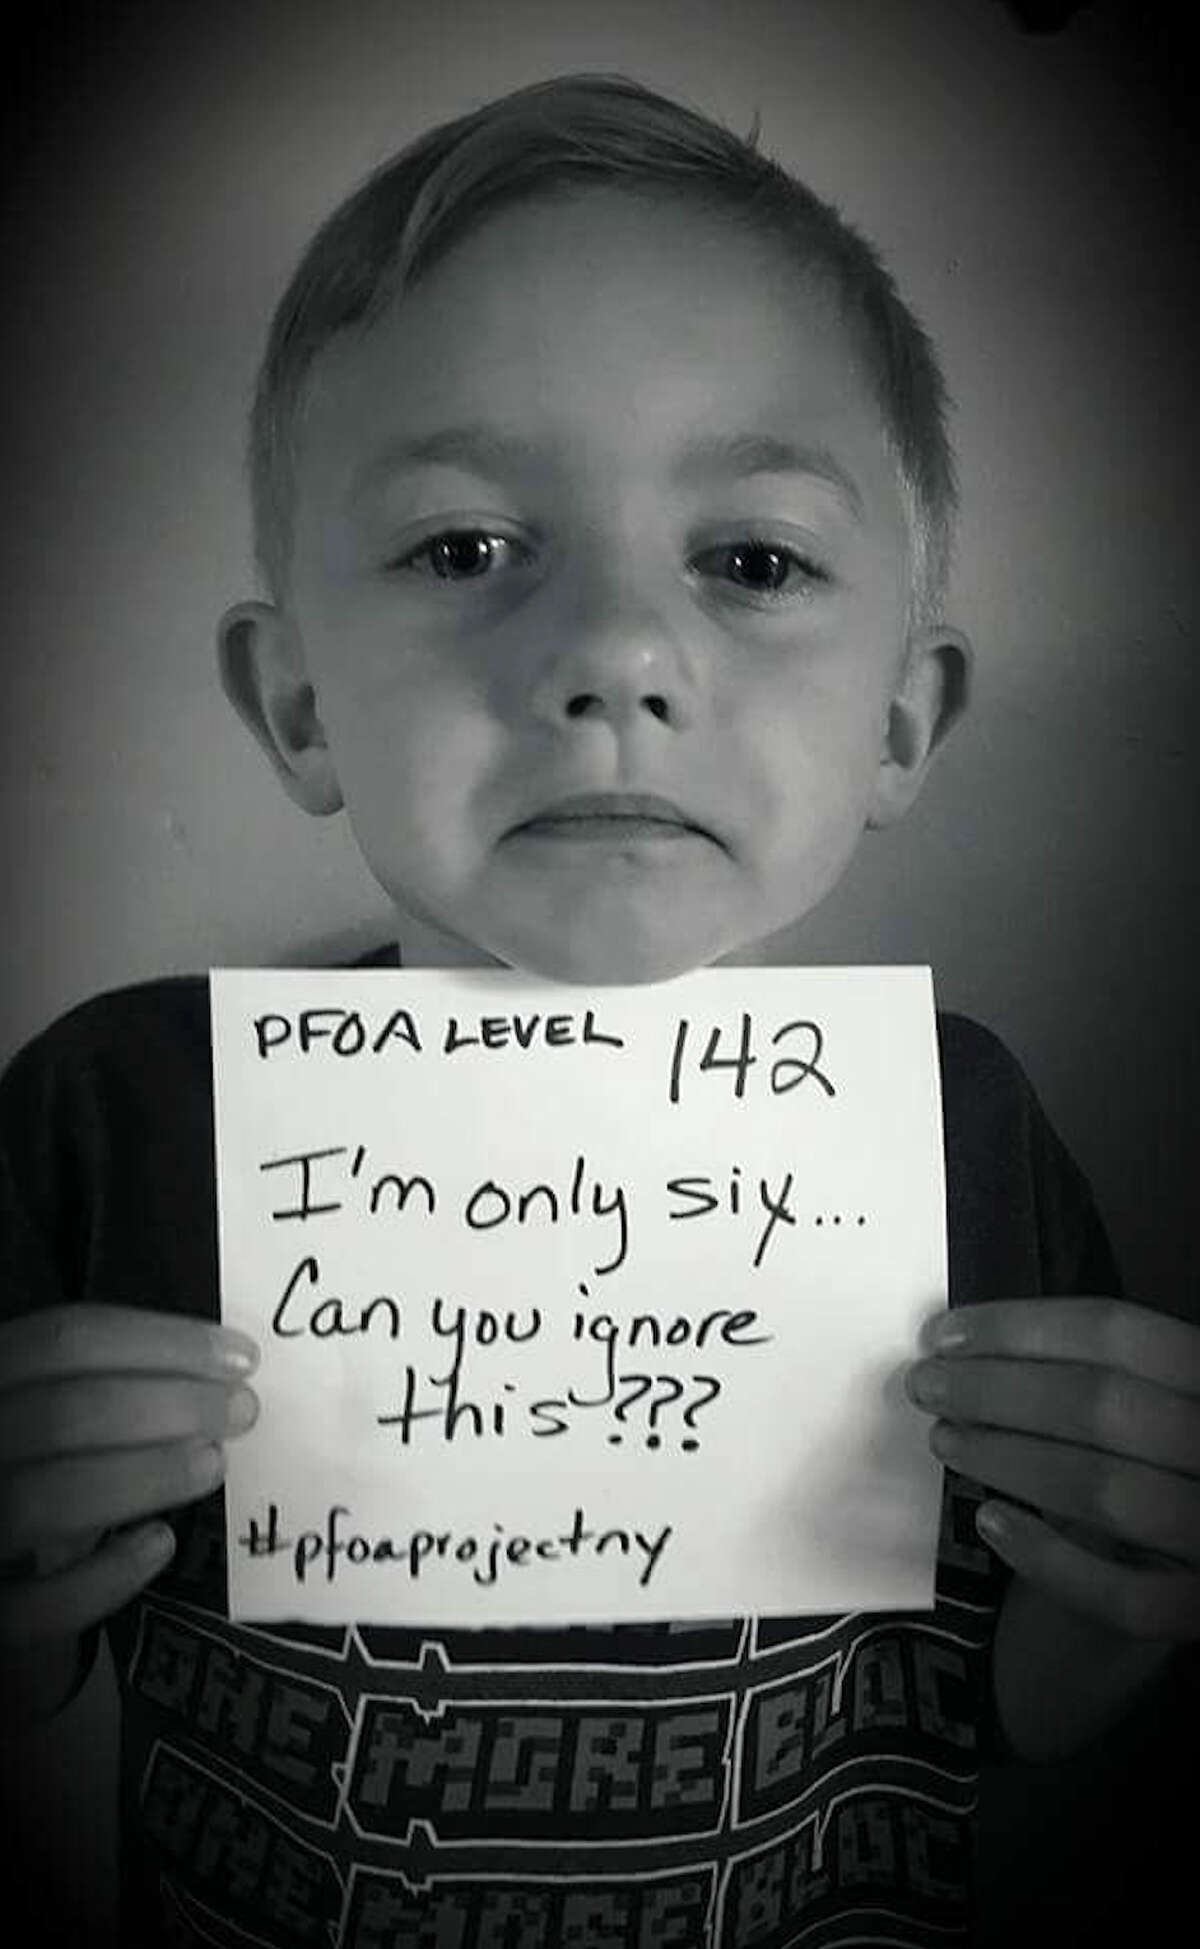 Hoosick Falls resident, Corey Aldrich, 6, displays a sign with his body's PFOA level after receiving the results of a recent blood test conducted by the state. The photo was posted on Twitter by parents, Josh and Nikki Aldrich. (Courtesy Josh and Nikki Aldrich)